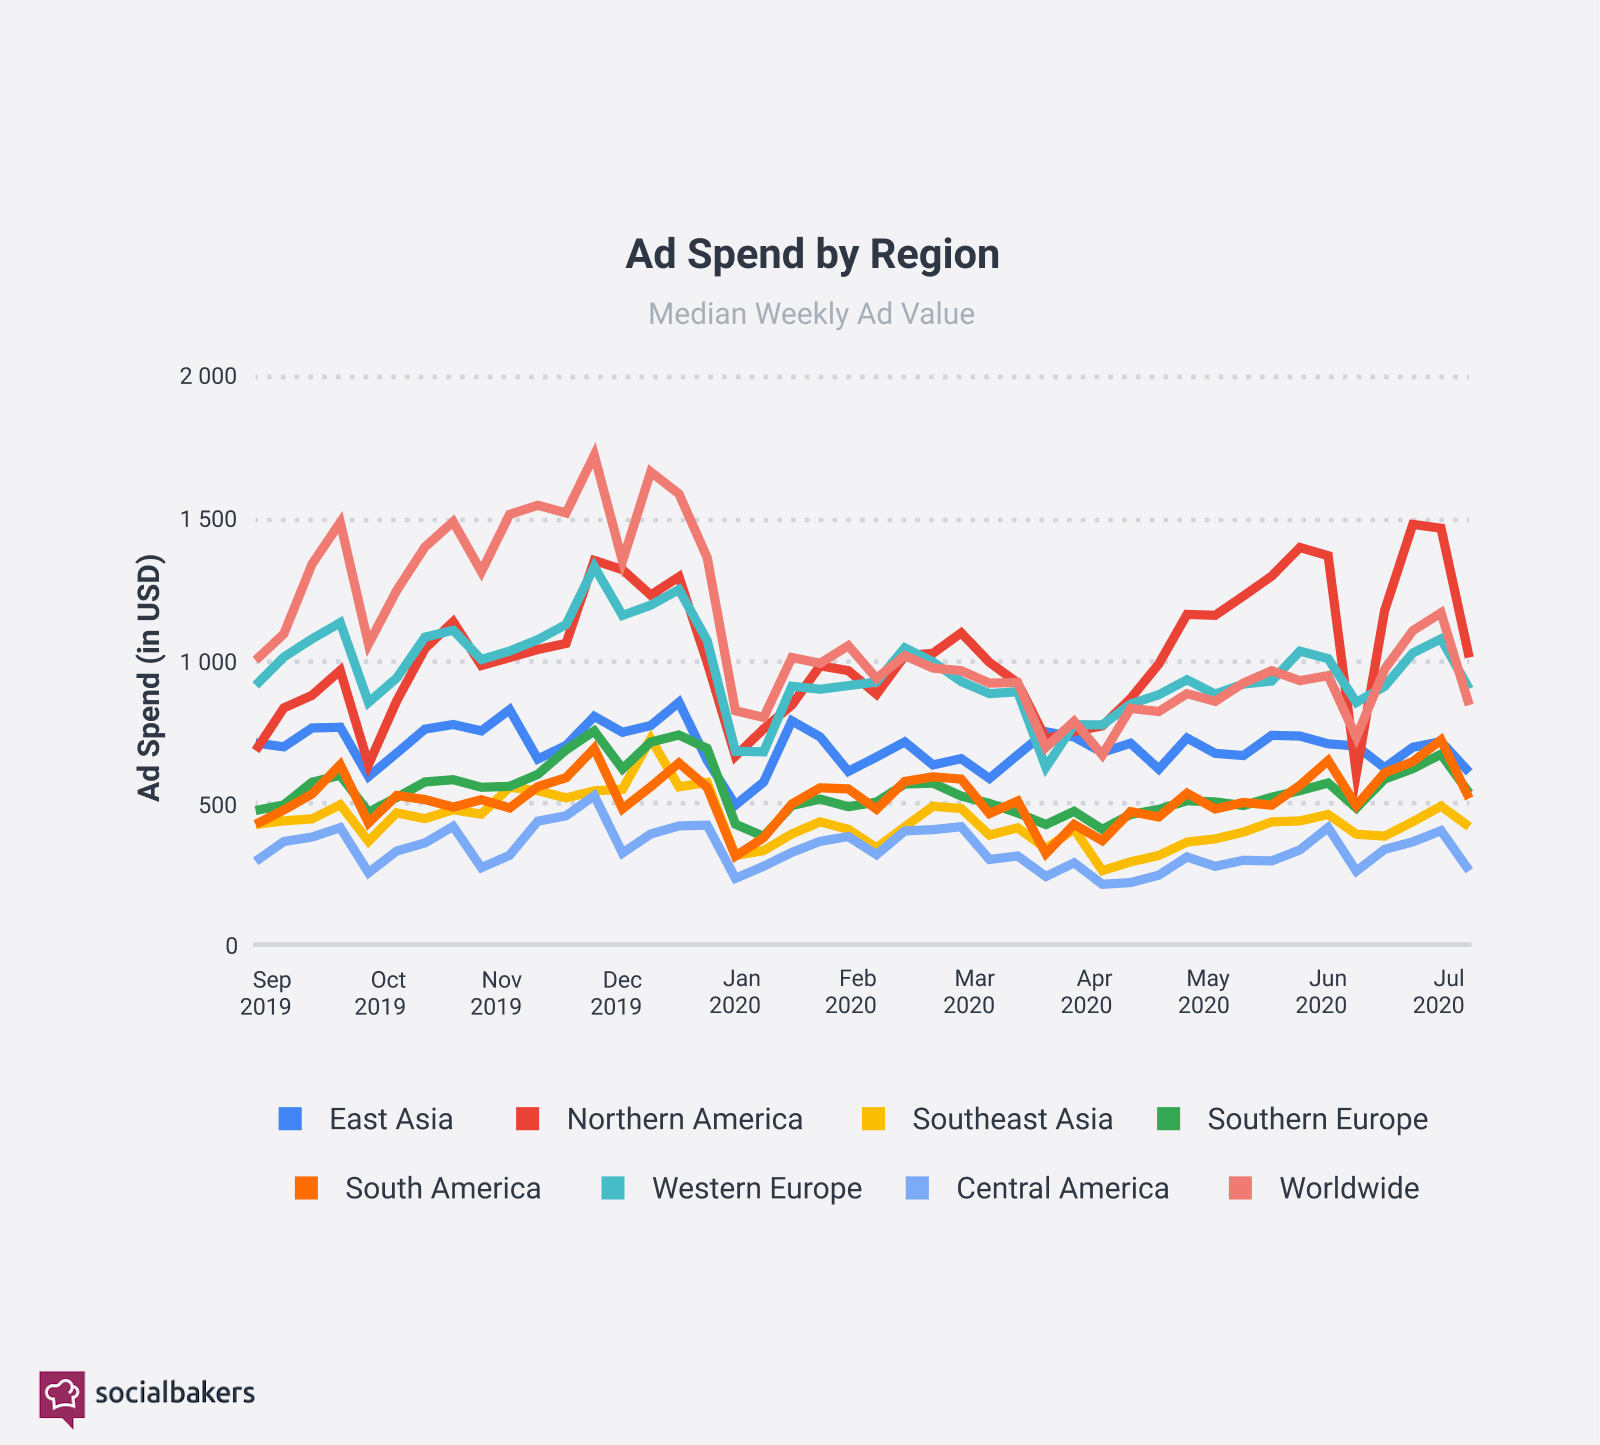 Q2 2020 Ad Spend by Region